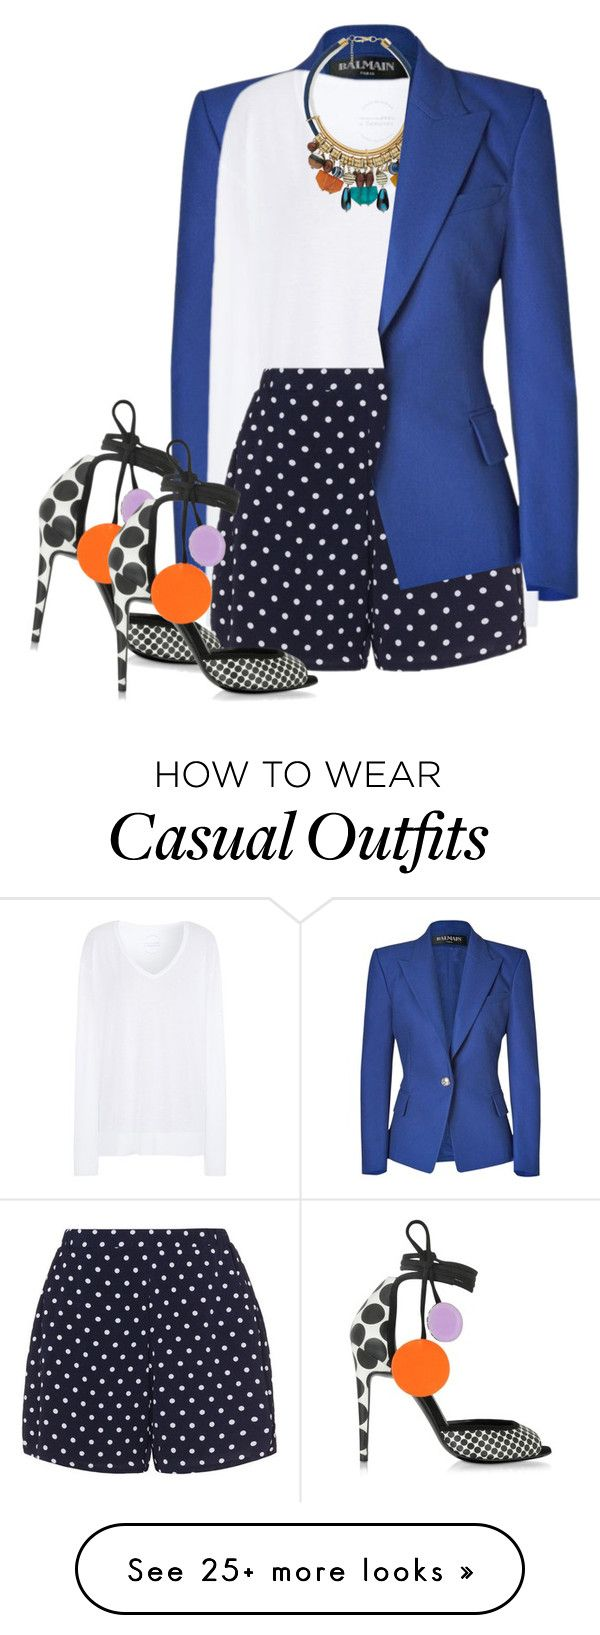 """Casual white shirt"" by budding-designer on Polyvore featuring Balmain, Comptoir Des Cotonniers, MANGO, Zizzi, Pierre Hardy and WardrobeStaples"